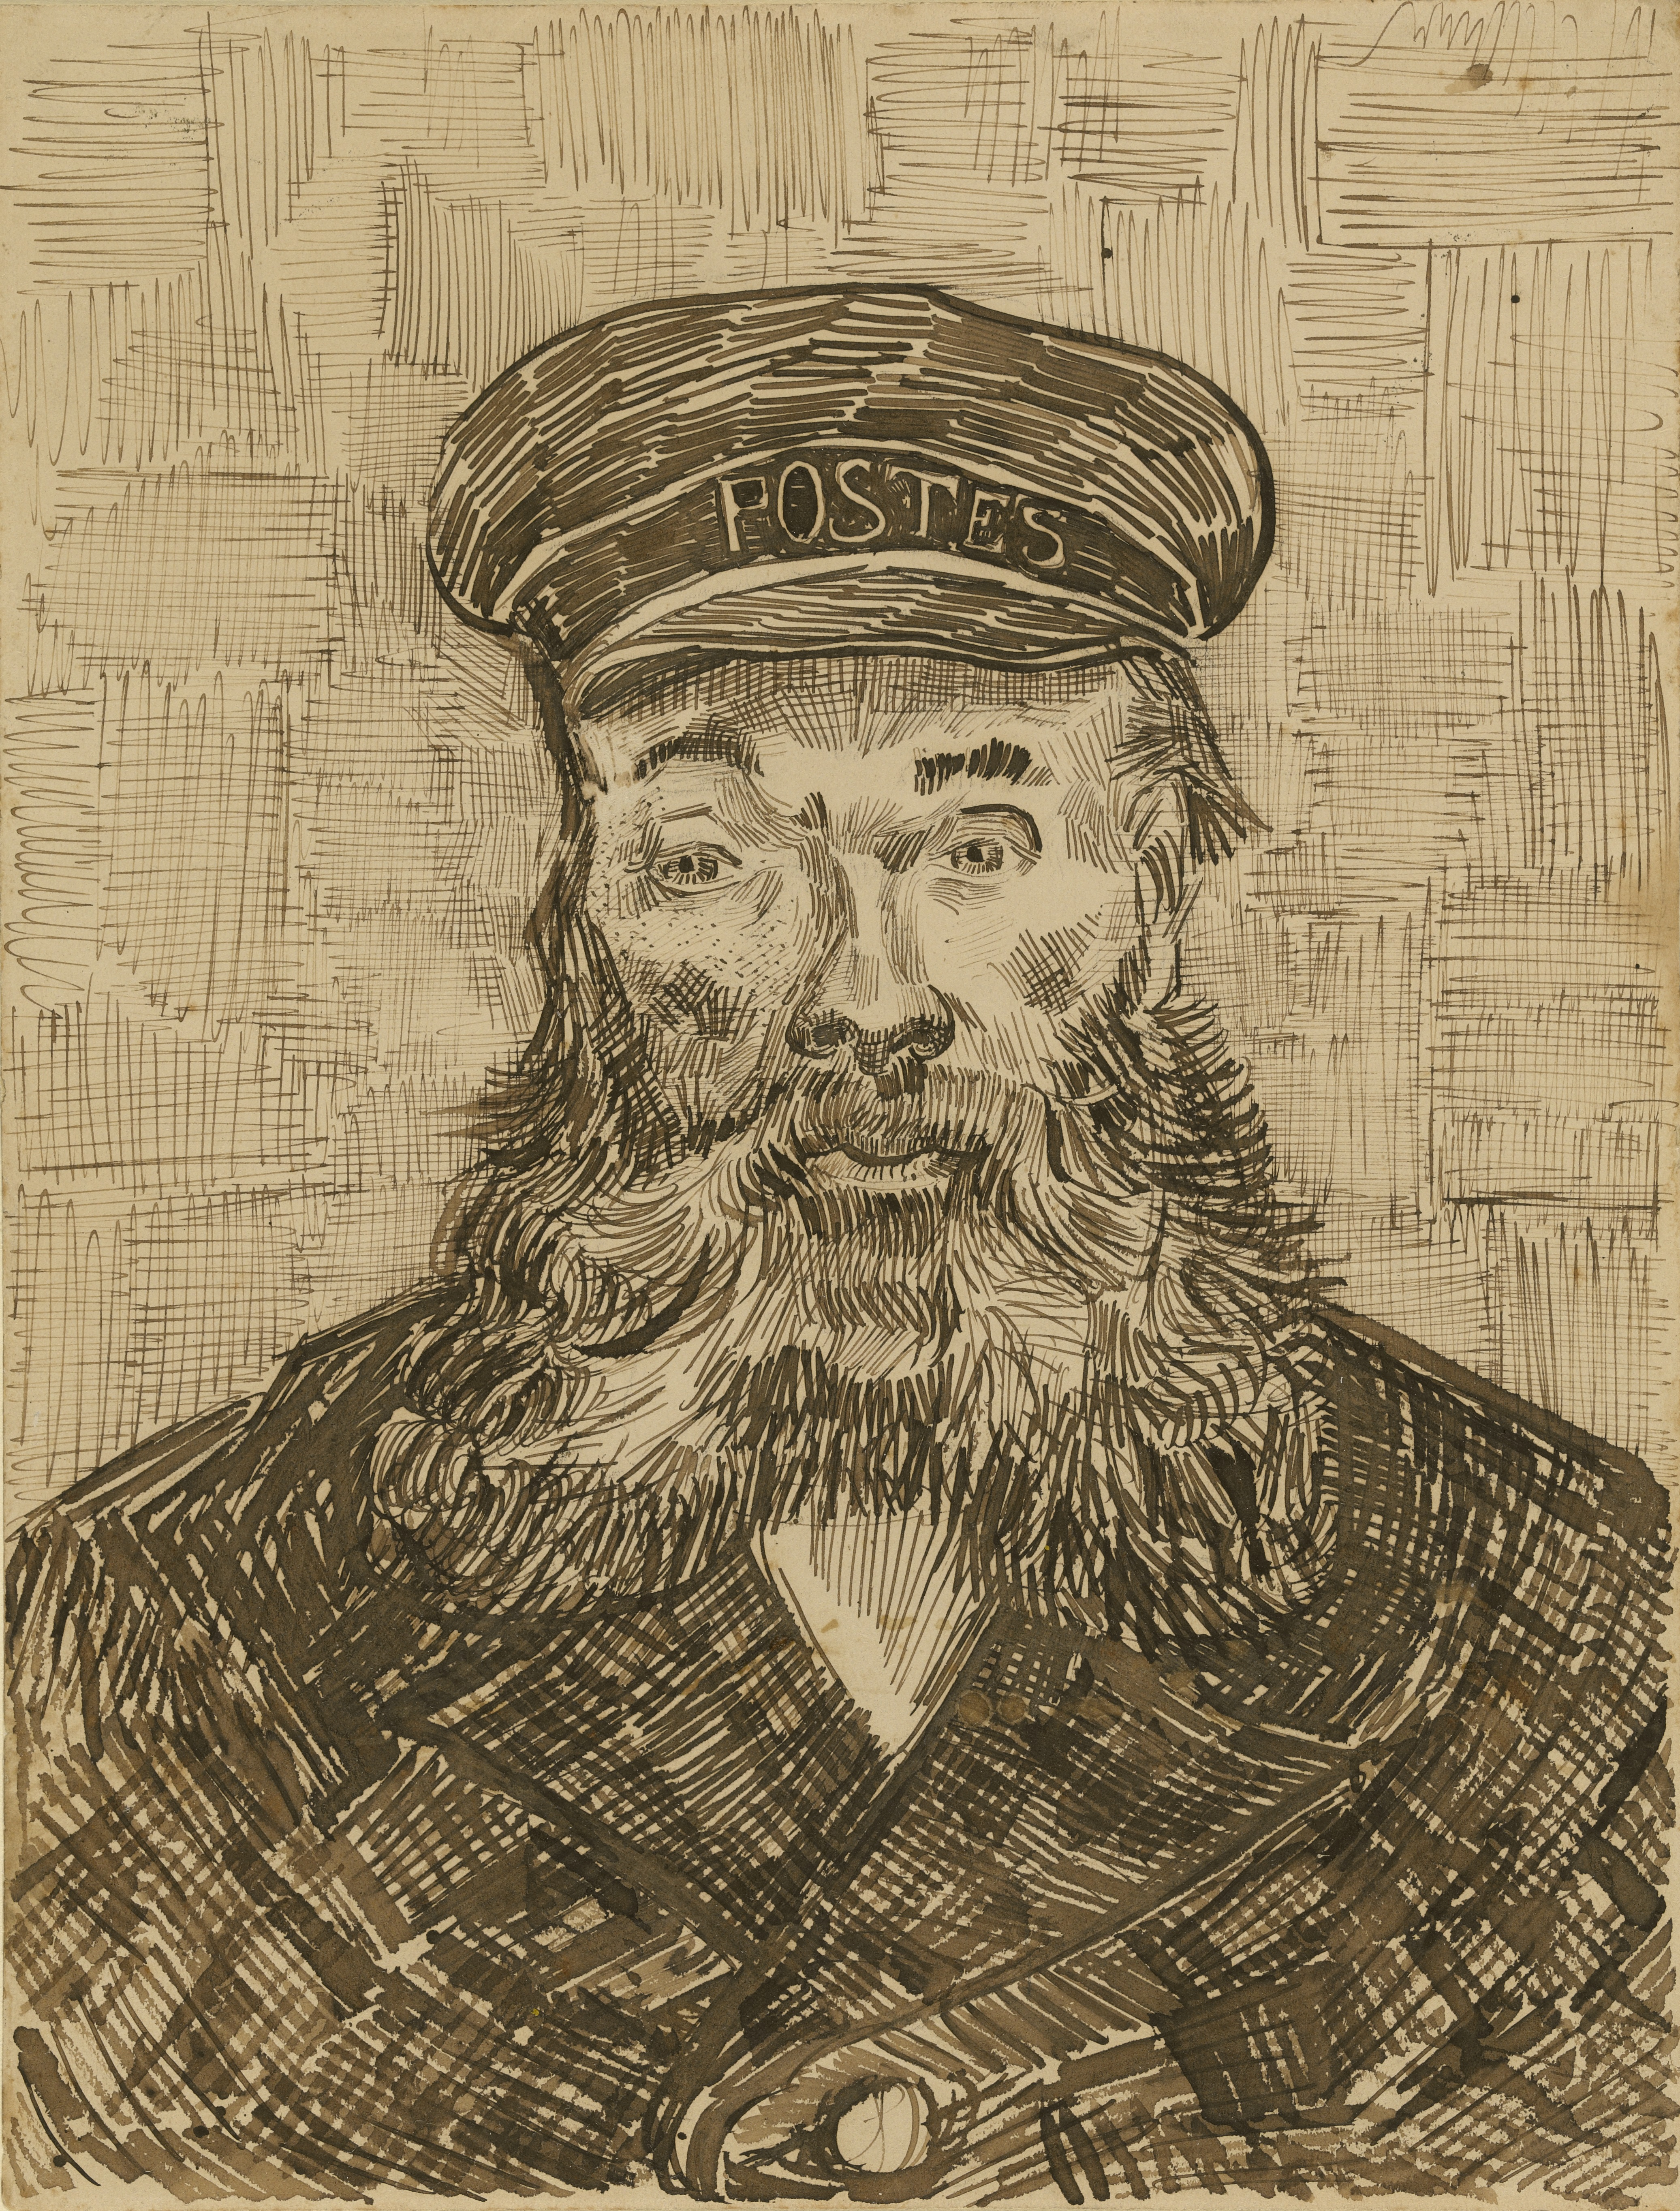 Portrait of the Postman Joseph Roulin (1888) van Gogh Getty